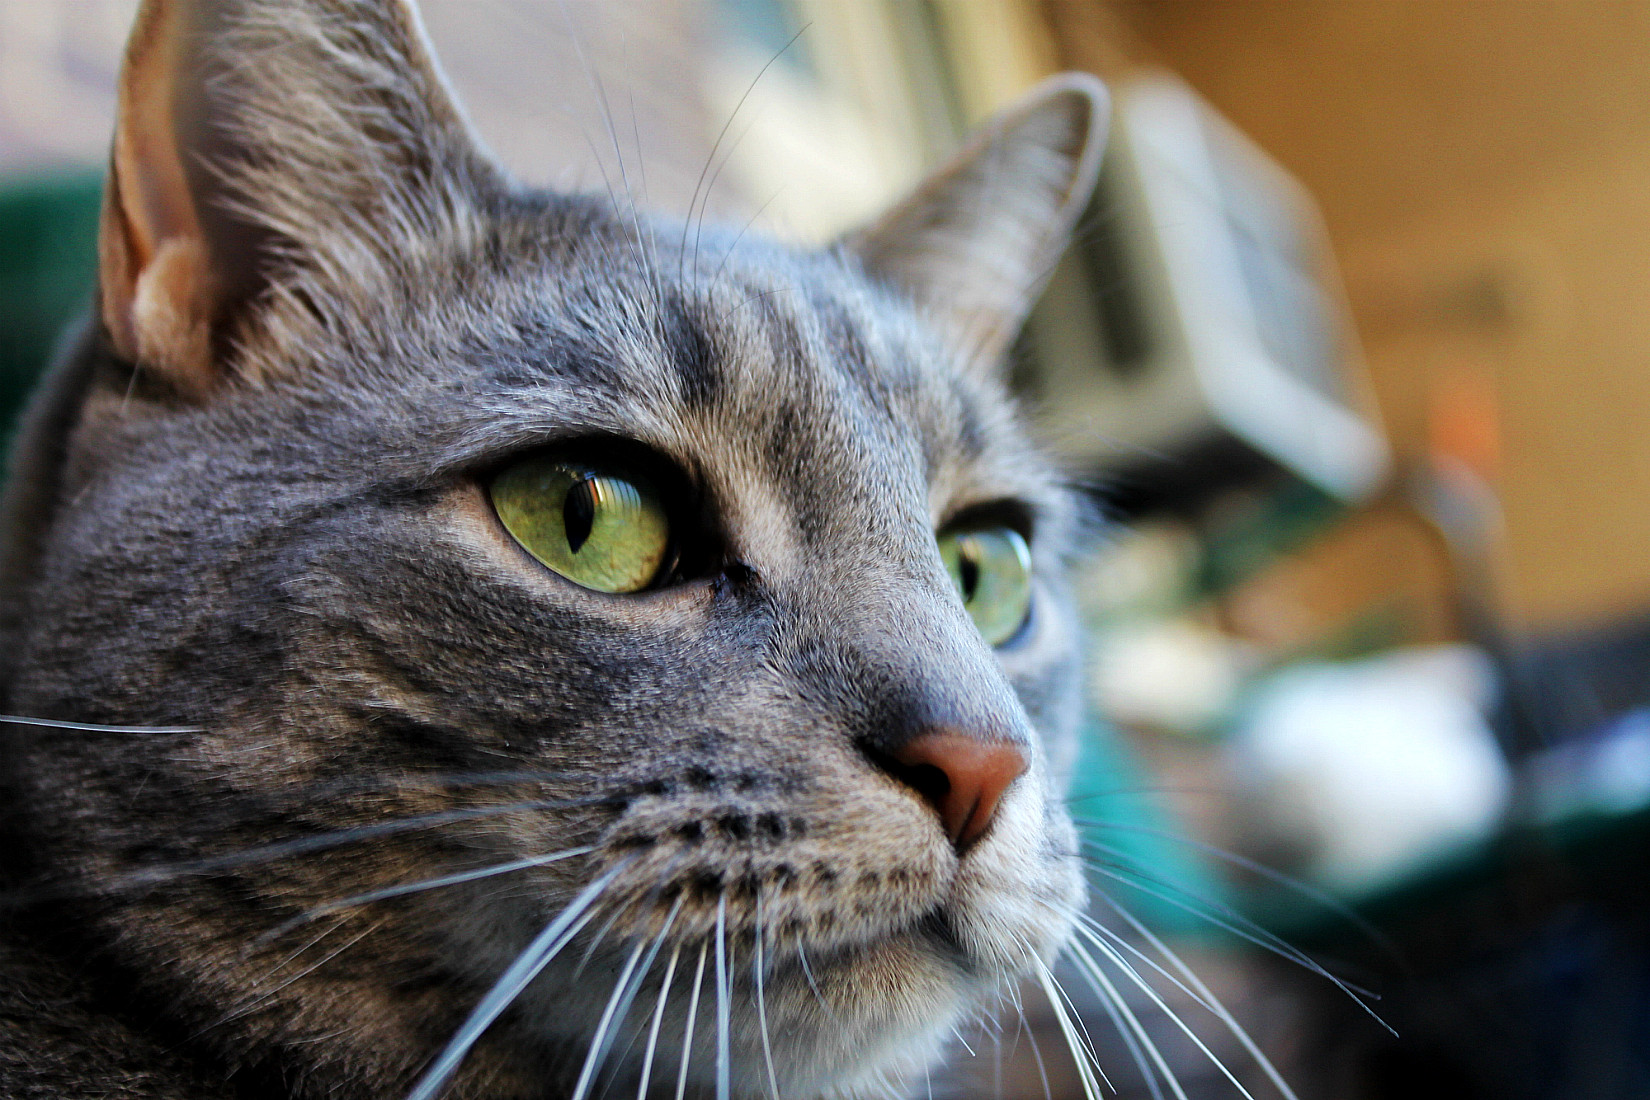 Buddy's Whiskers